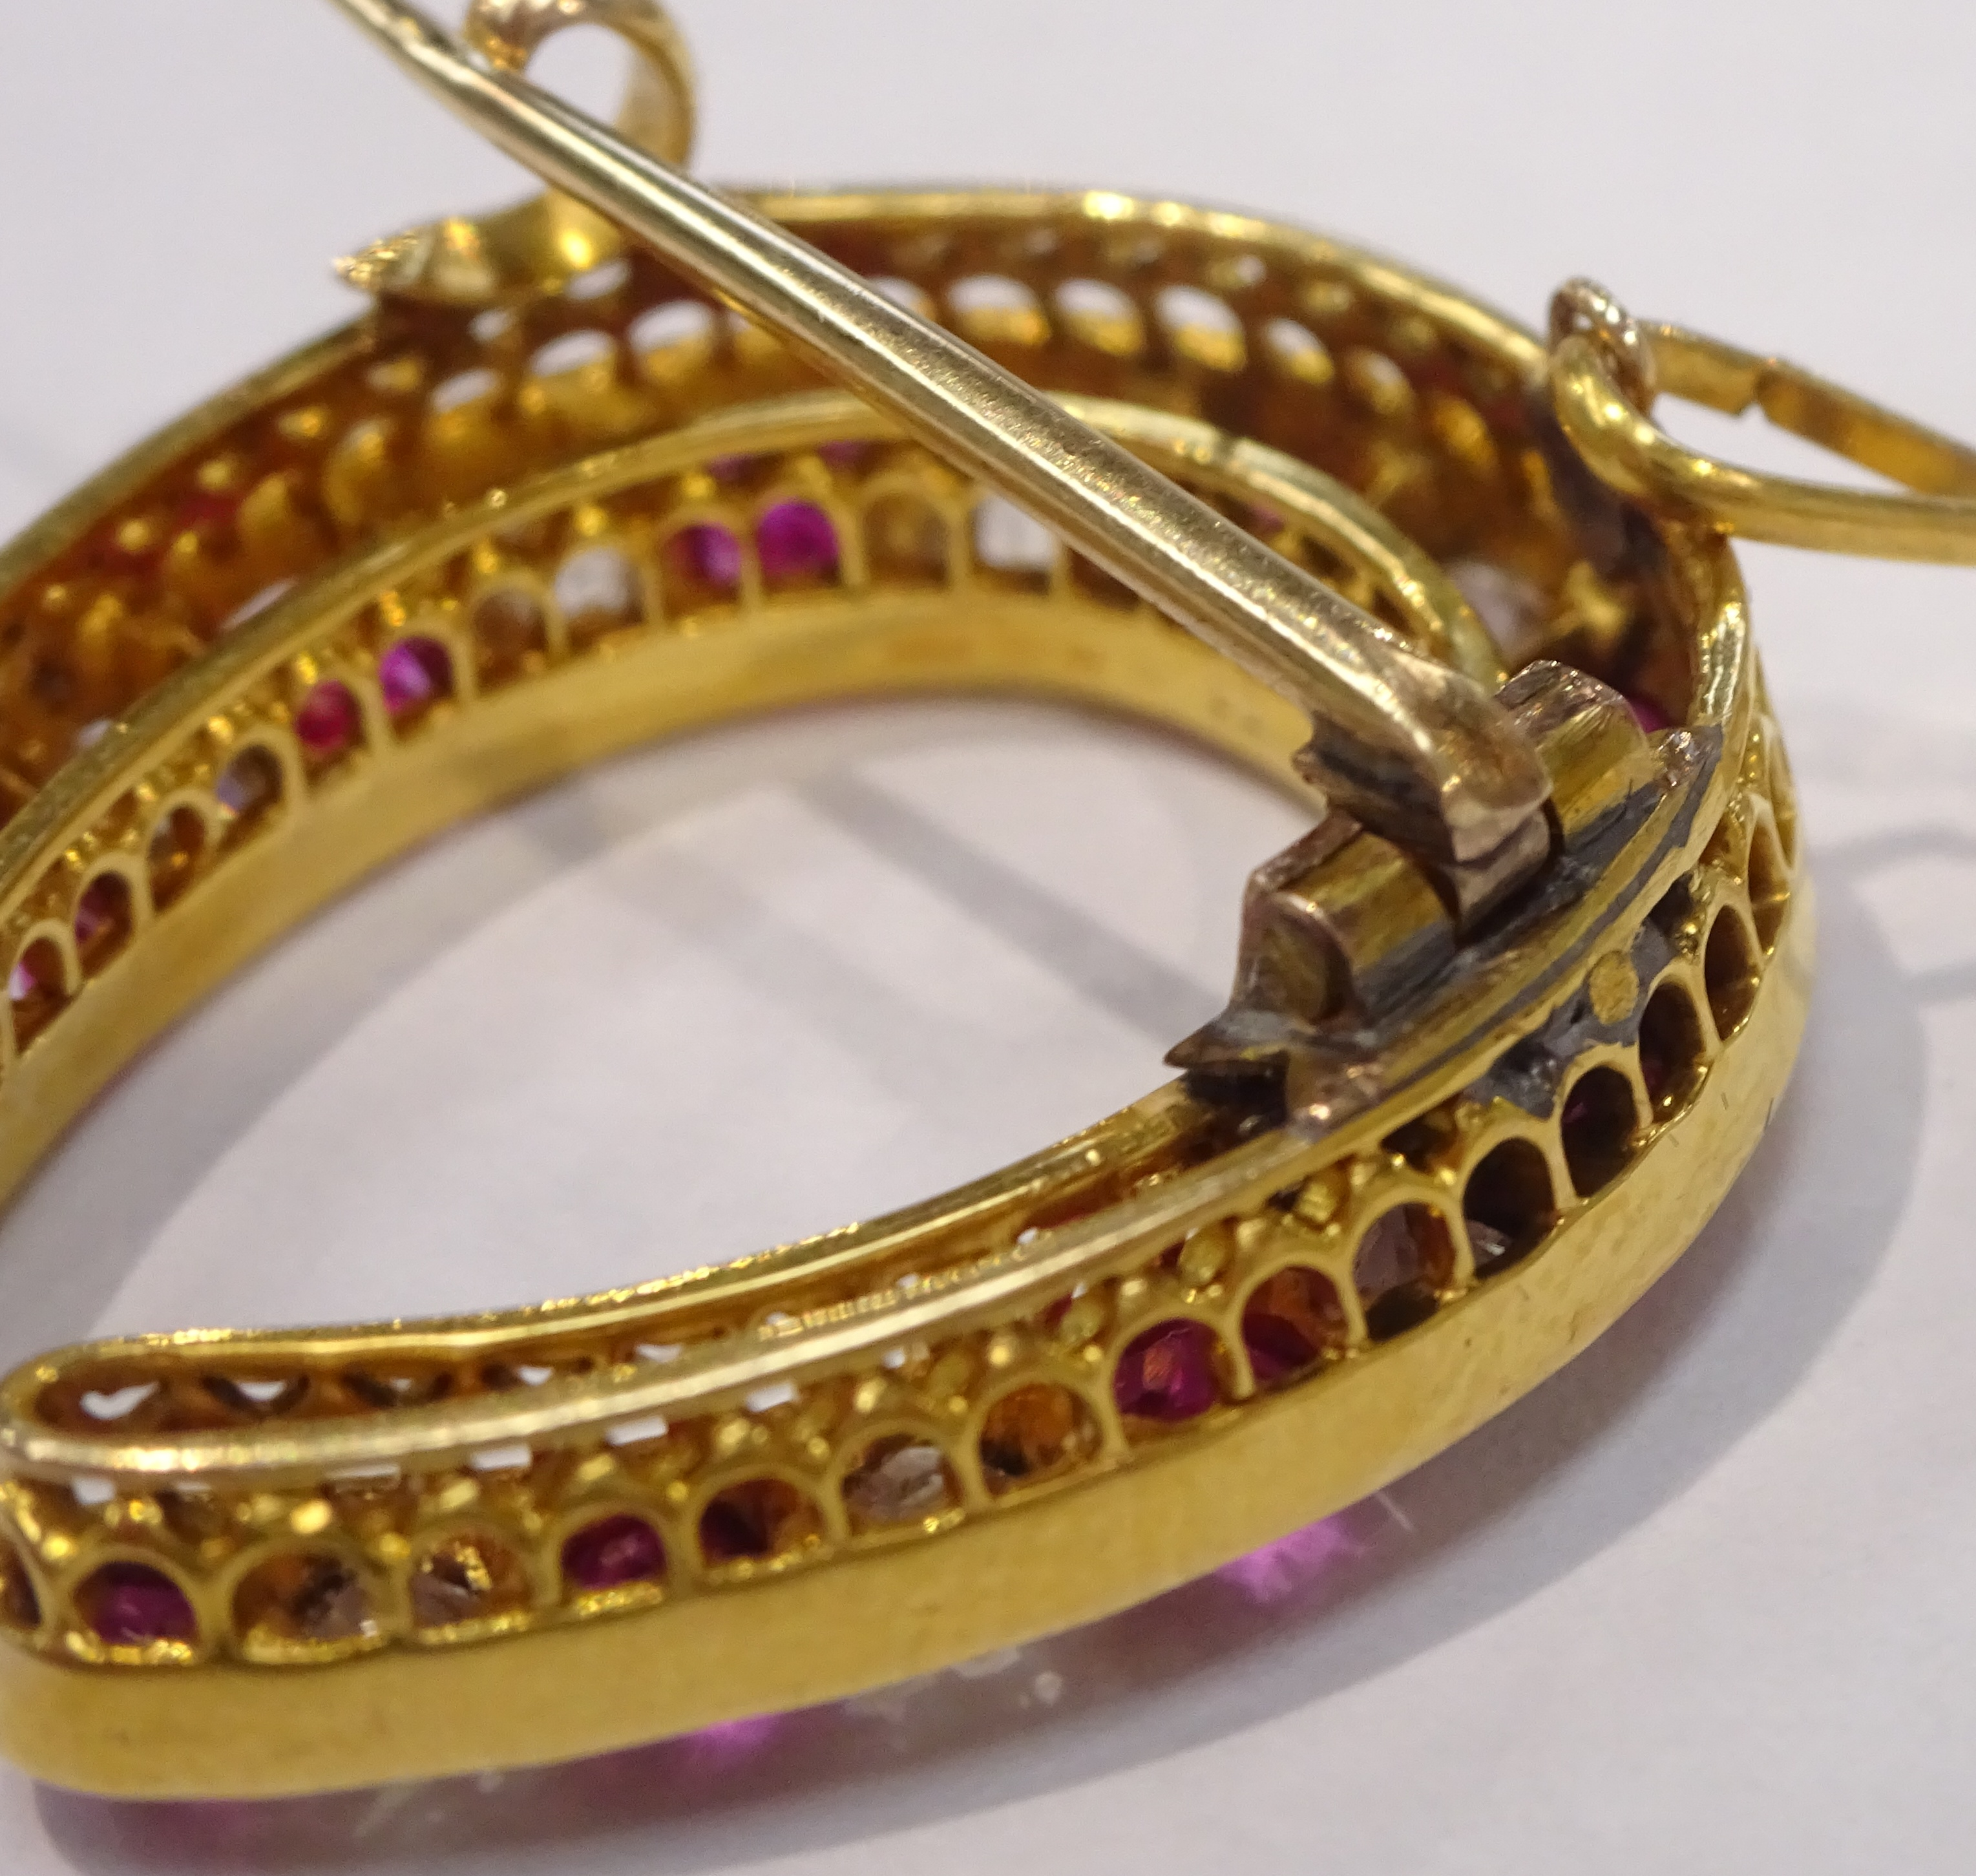 Lot 1003 - Early 20th century gold ruby and old cut diamond horseshoe brooch Condition Report &